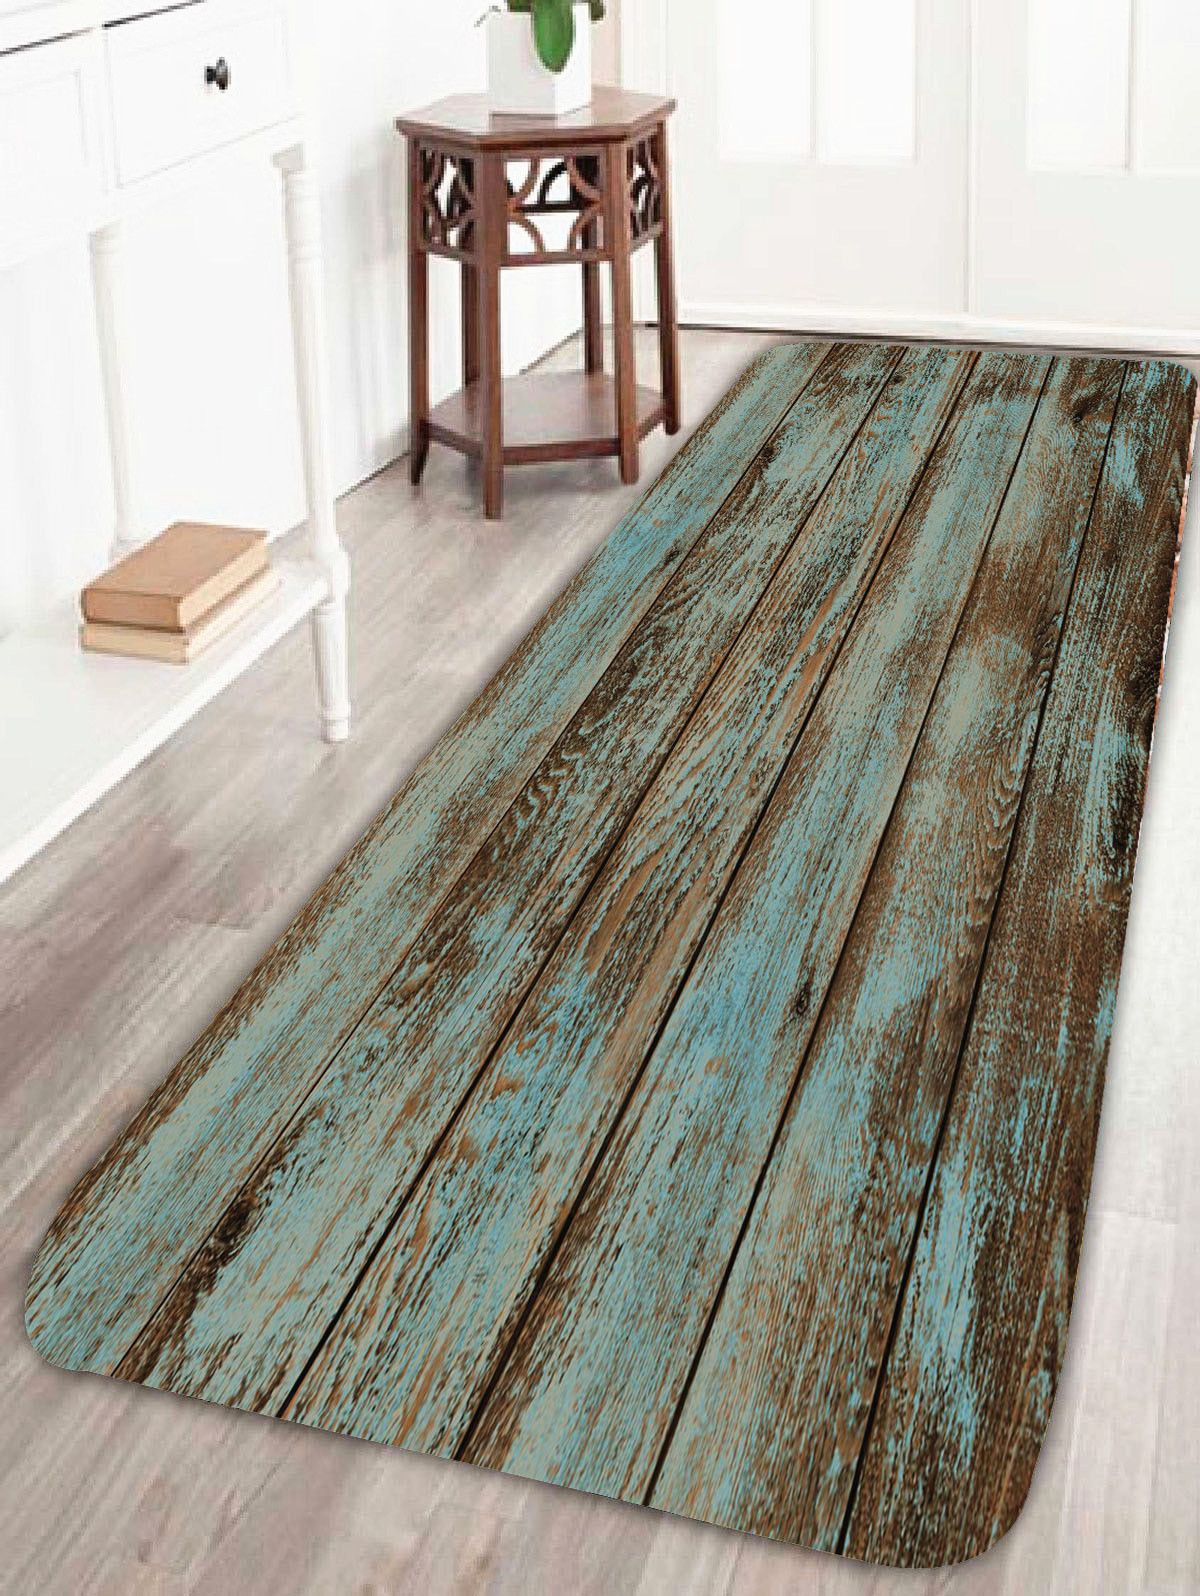 Vintage Wood Grain Print Bathroom Rug Green W24 Inch